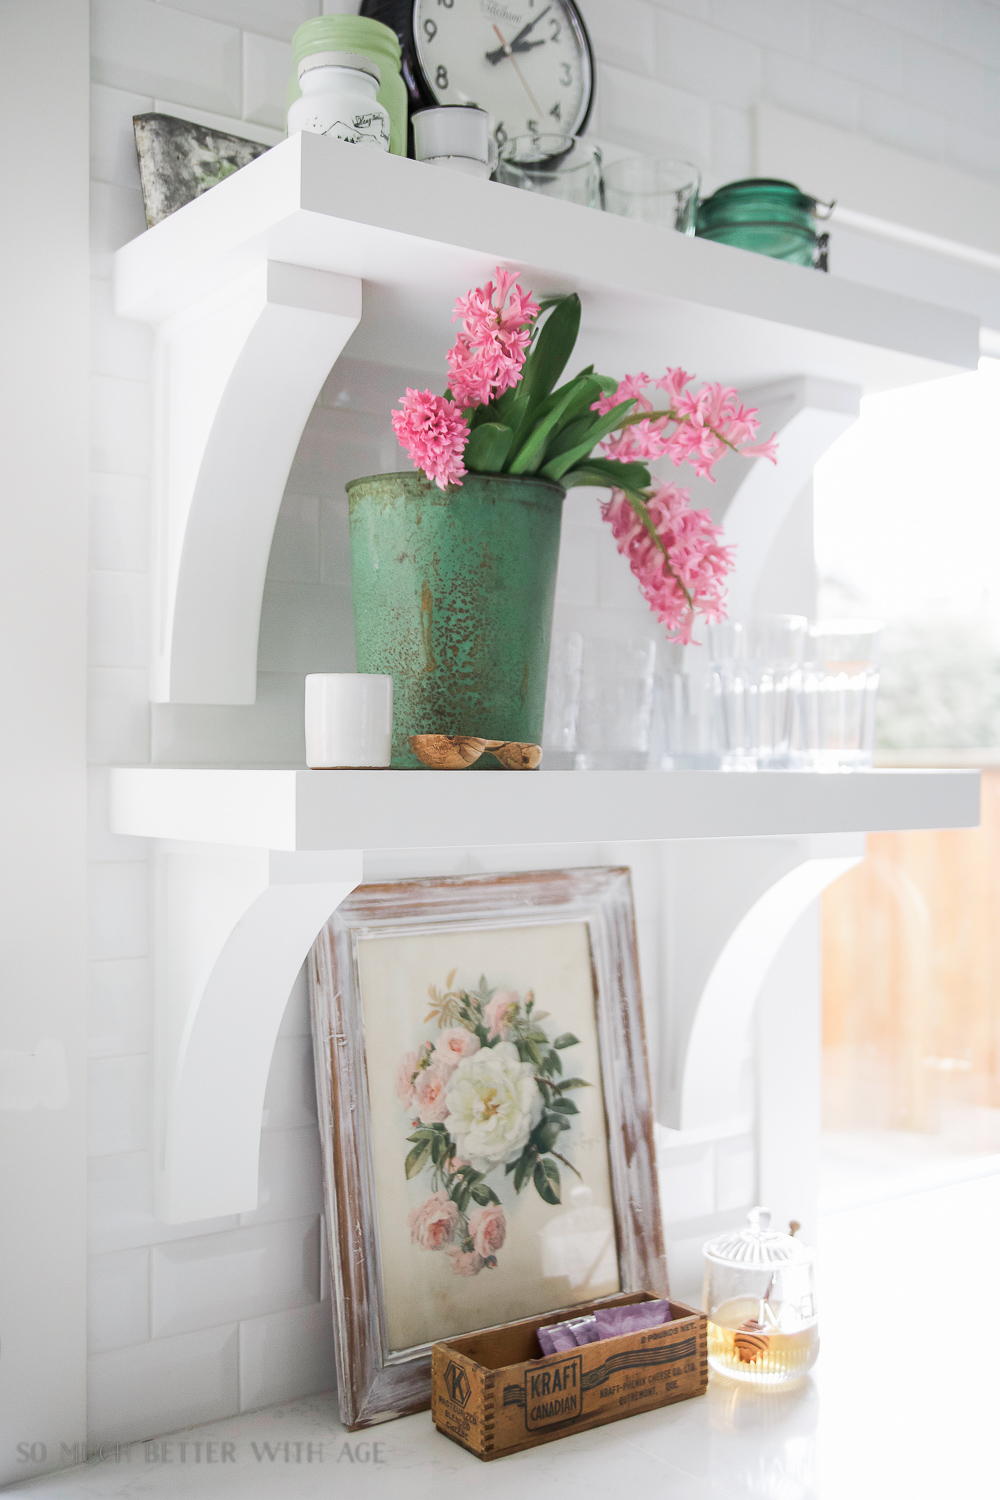 Vintage floral artwork, How to Pick Art with a French Vintage Vibe / art on shelves in kitchen - So Much Better With Age